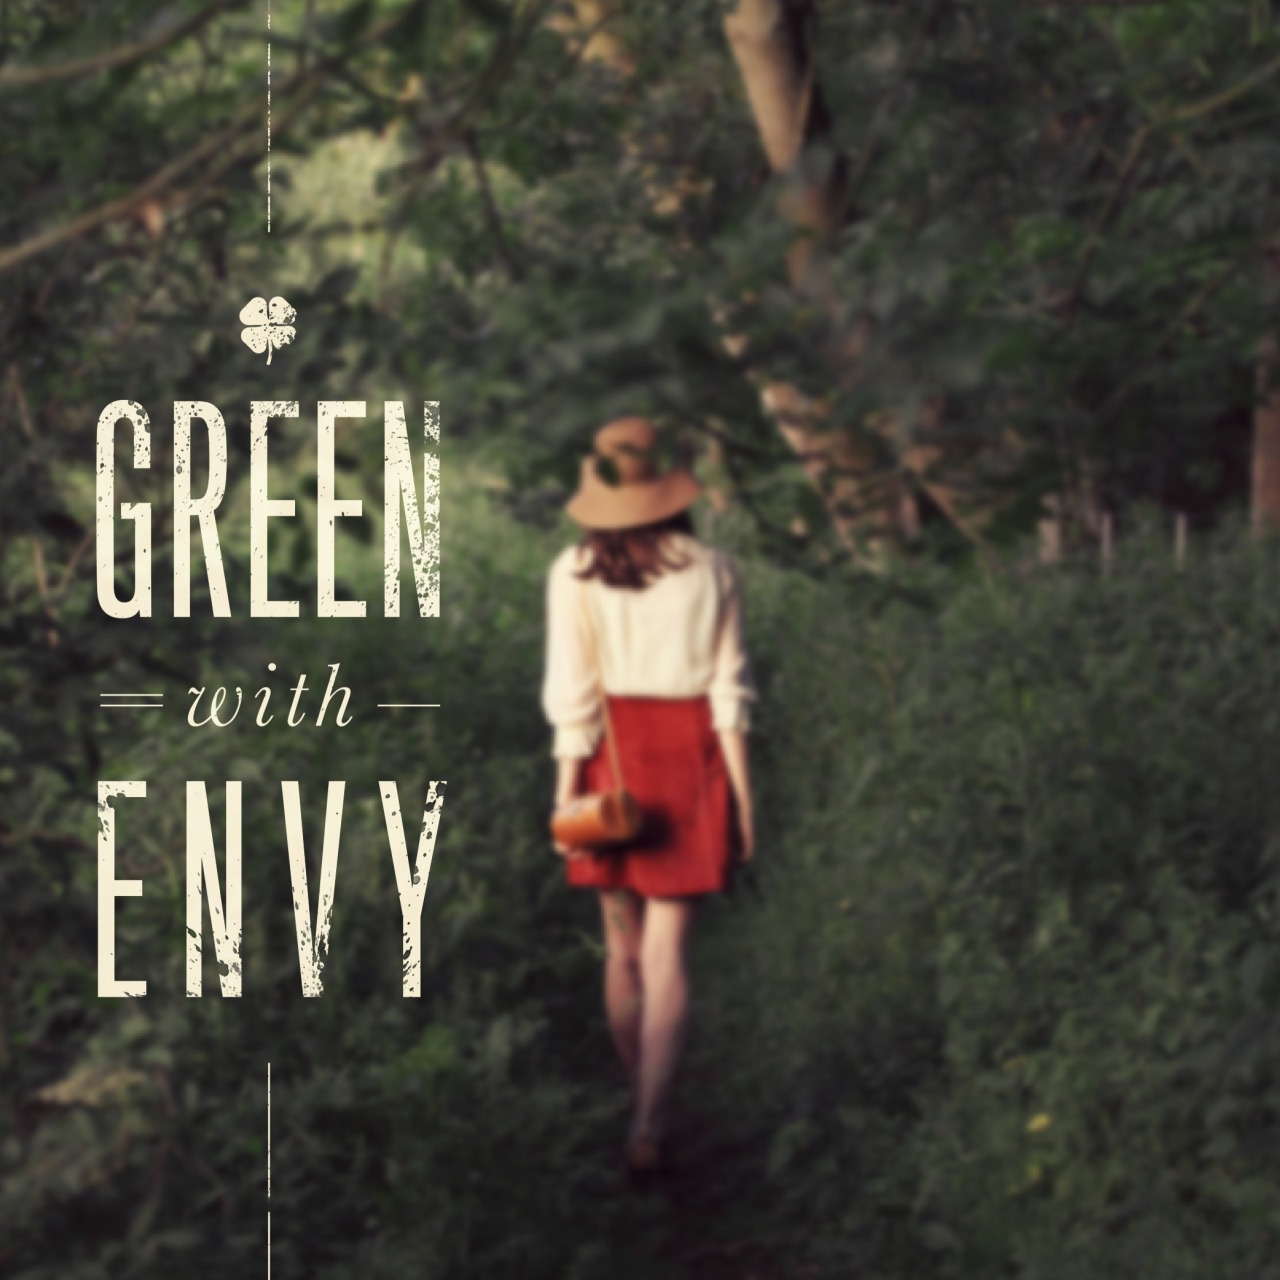 I'm Green with Envy This works so well for me, because I'm a vegetarian, and … okay I'm kidding this isn't about me. This was just a quick idea that seemed perfect for a fashion related project. Sometimes a good line of copy and the right photo is all you need.  I should have been a copywriter. Or a Ninja Turtle. Hmmmmm.